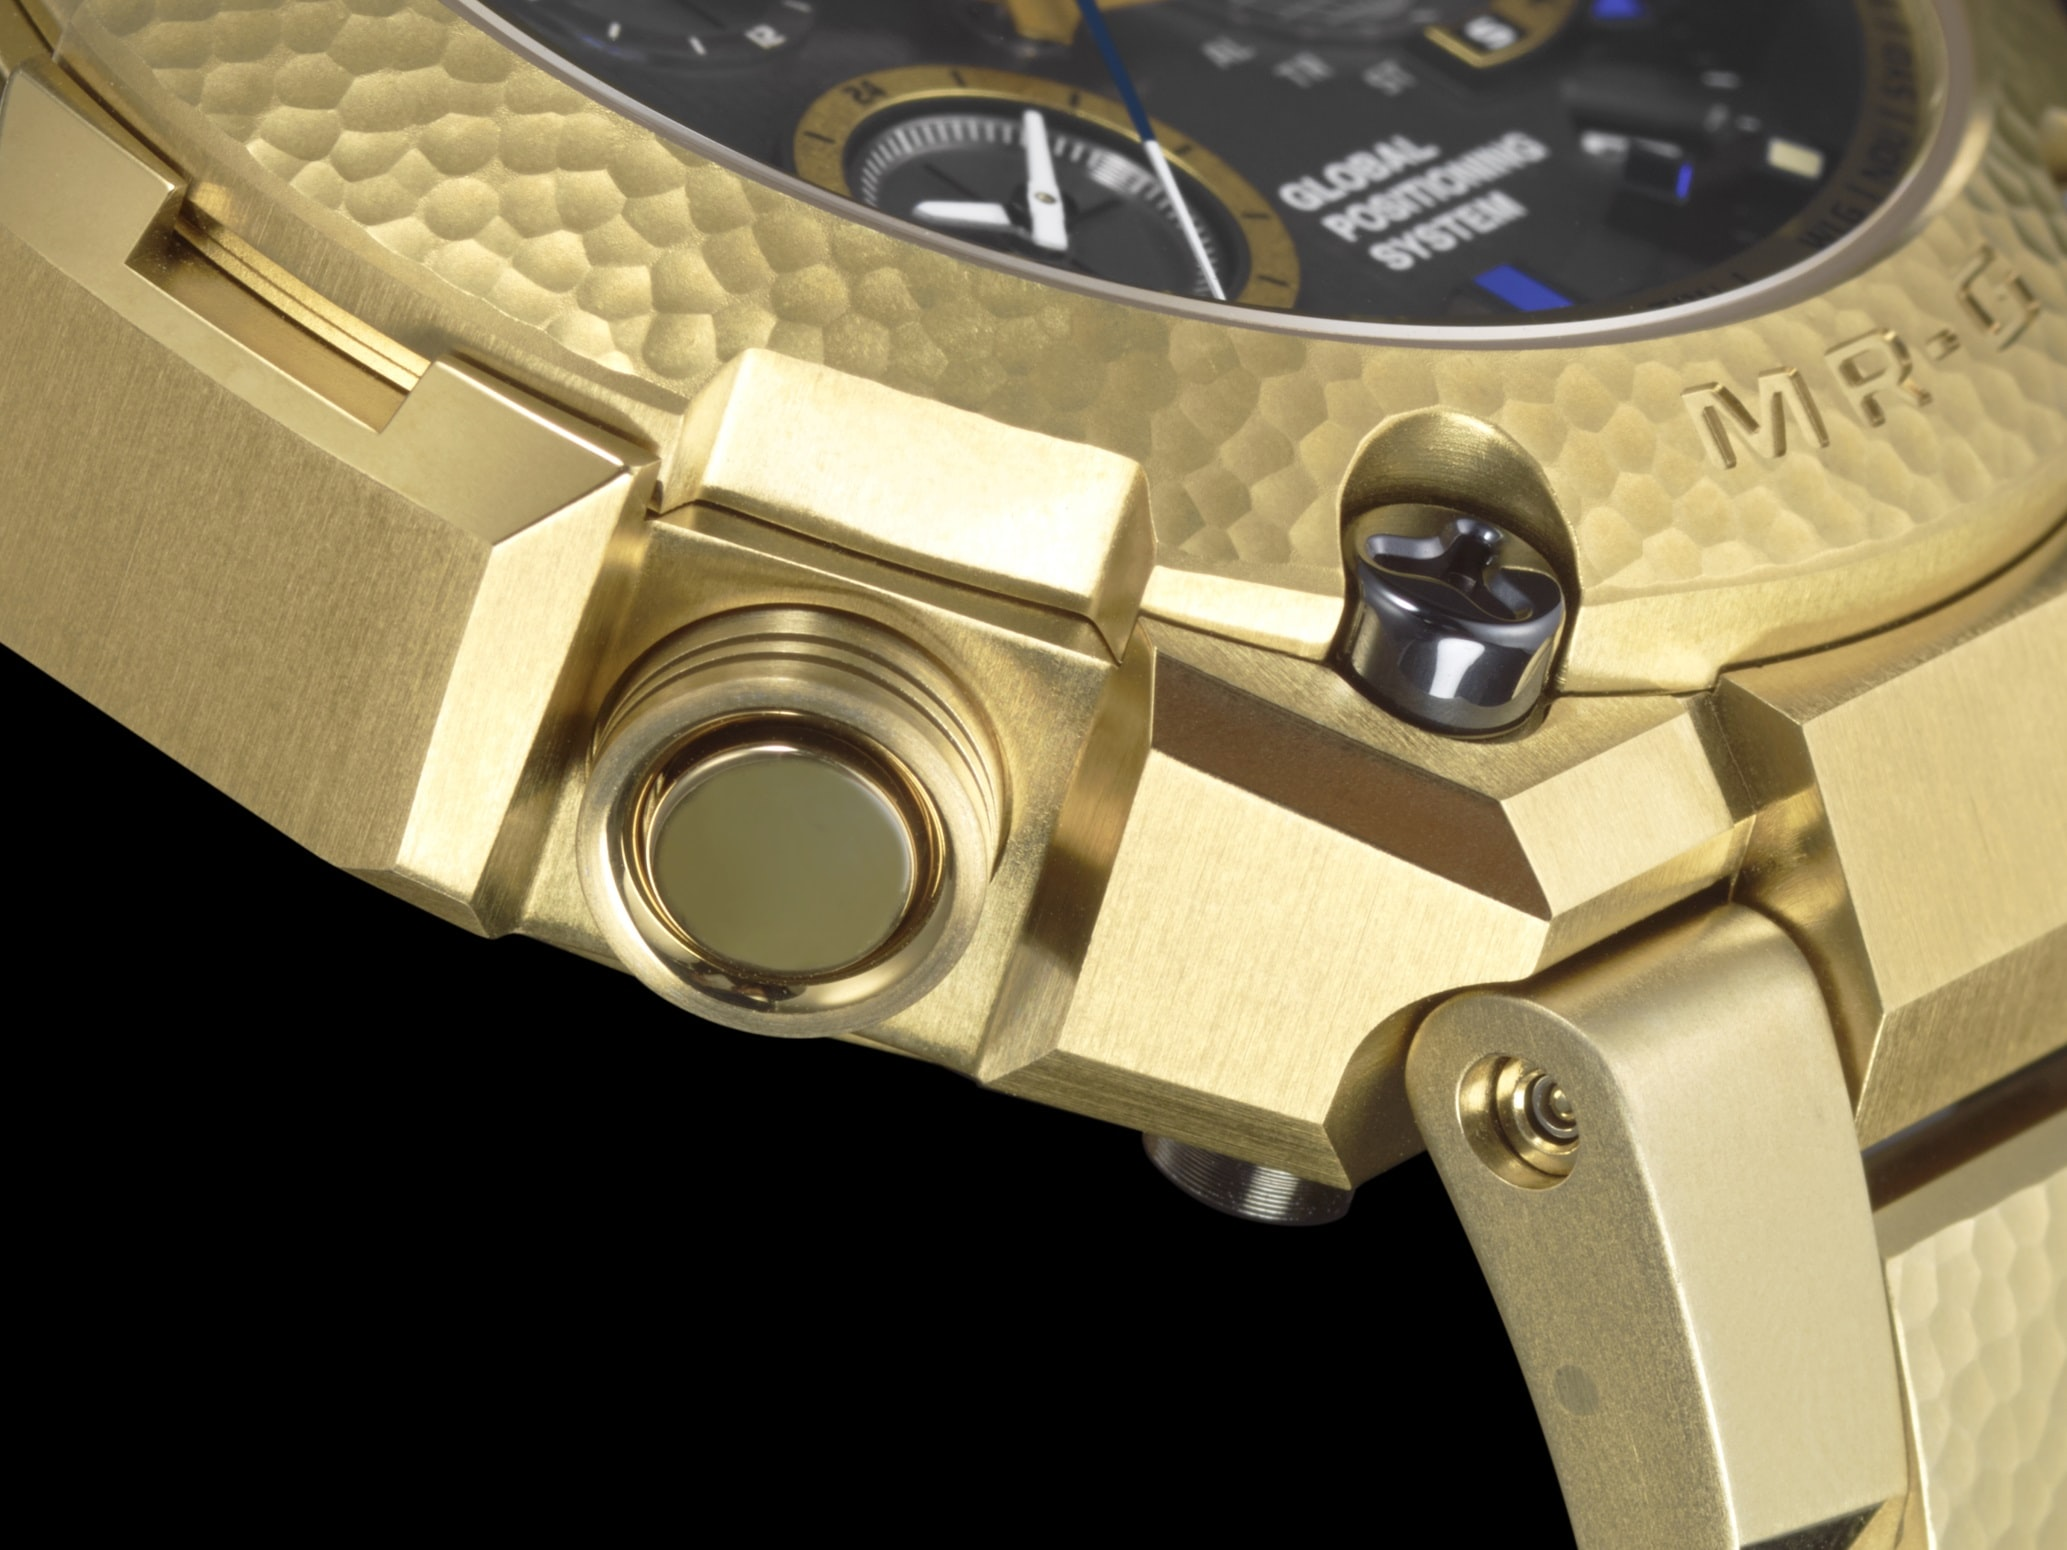 MRG-G10000HG-9A bezel Introducing: The Casio G-Shock 'Hammer Tone' MRG-G10000HG-9A In Gold, Celebrating 20 Years Of MR-G Introducing: The Casio G-Shock 'Hammer Tone' MRG-G10000HG-9A In Gold, Celebrating 20 Years Of MR-G MRG G1000HG 9A theme 4